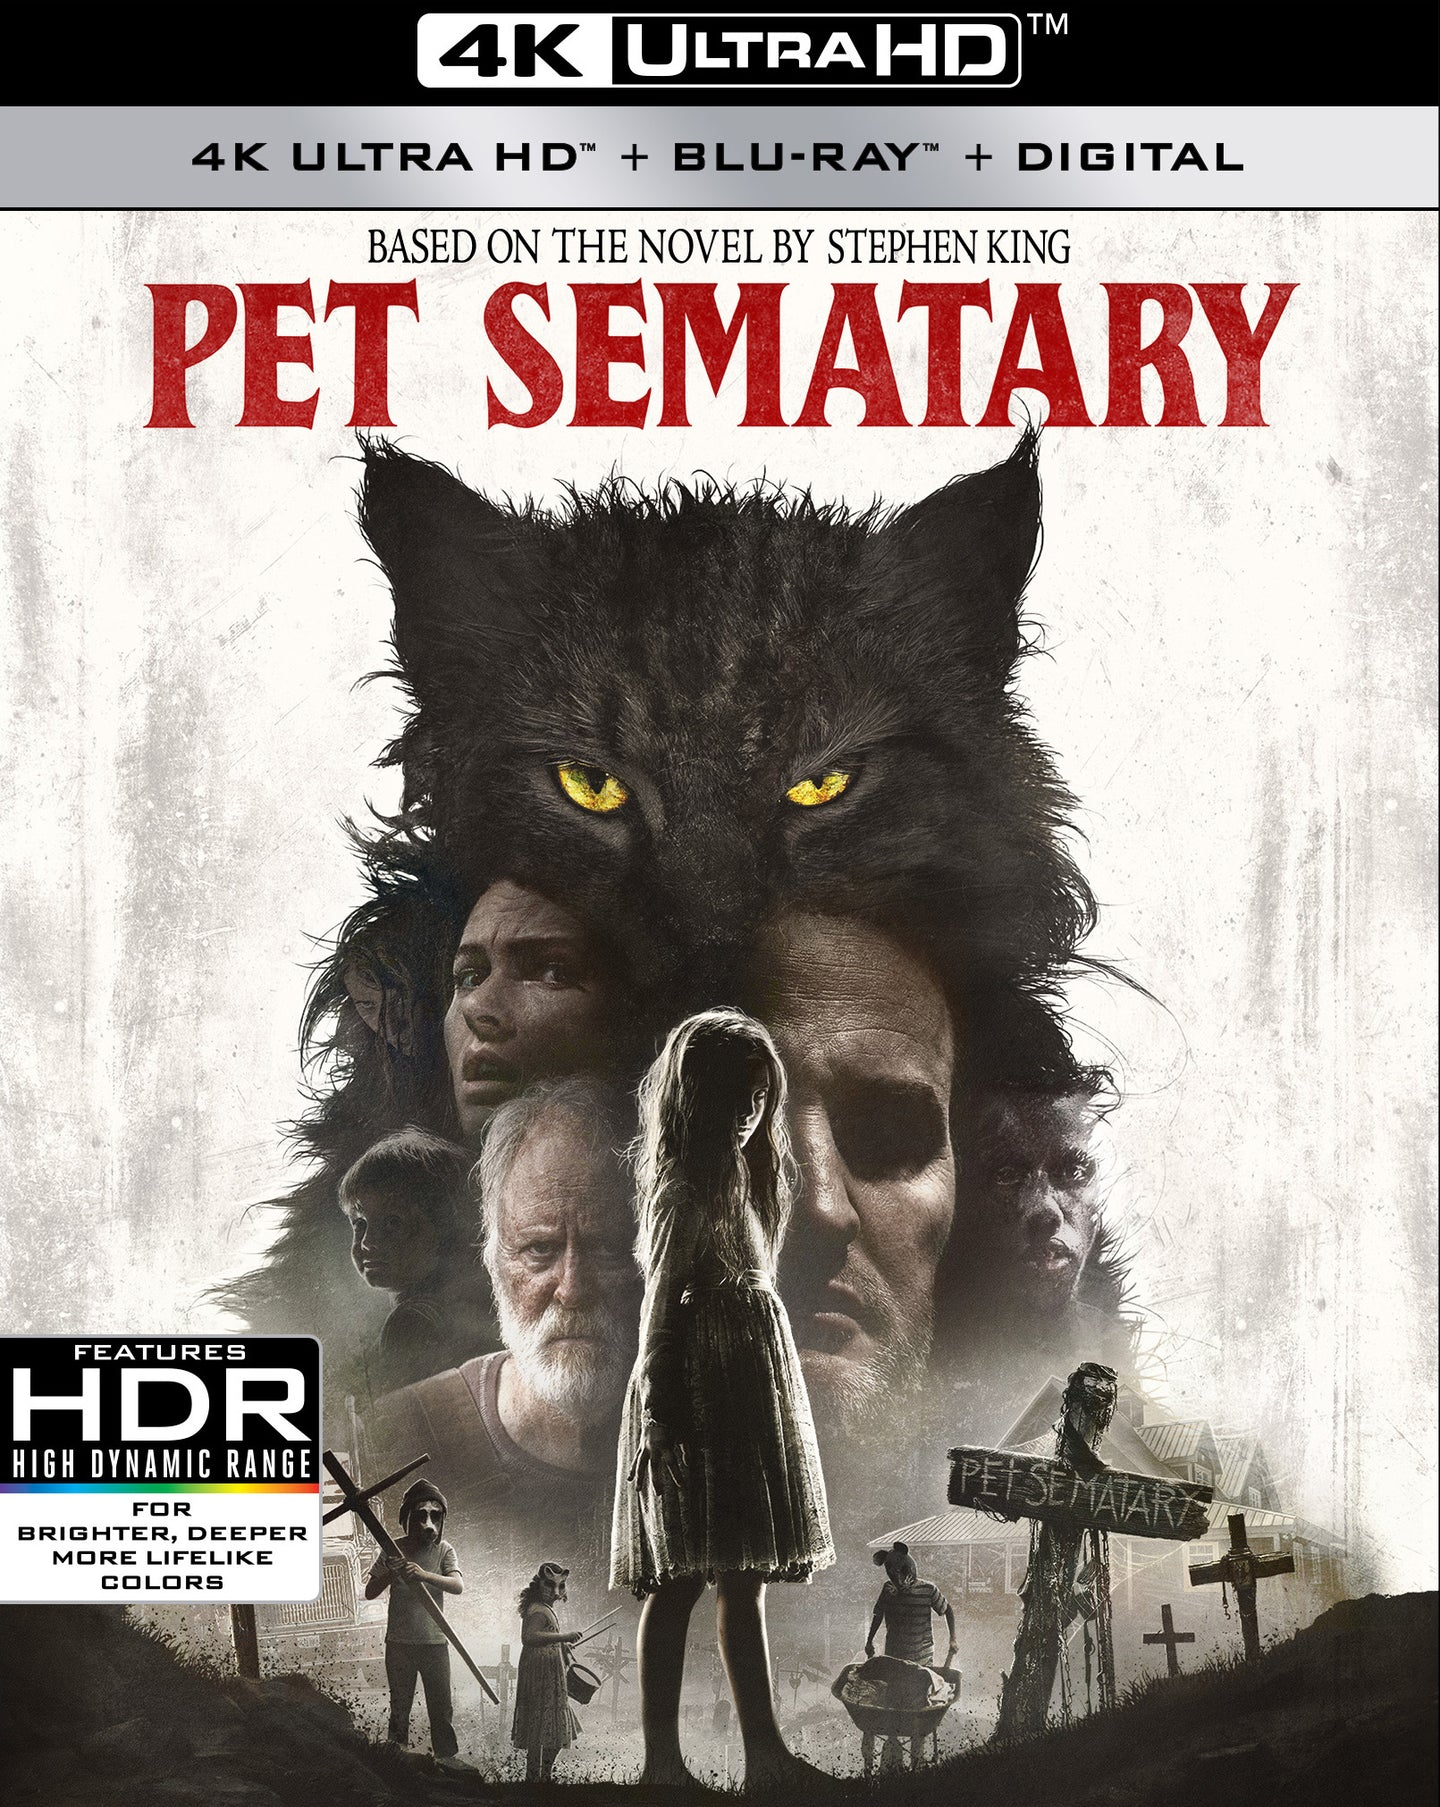 Pet Sematary (2019) iTunes 4K redemption only